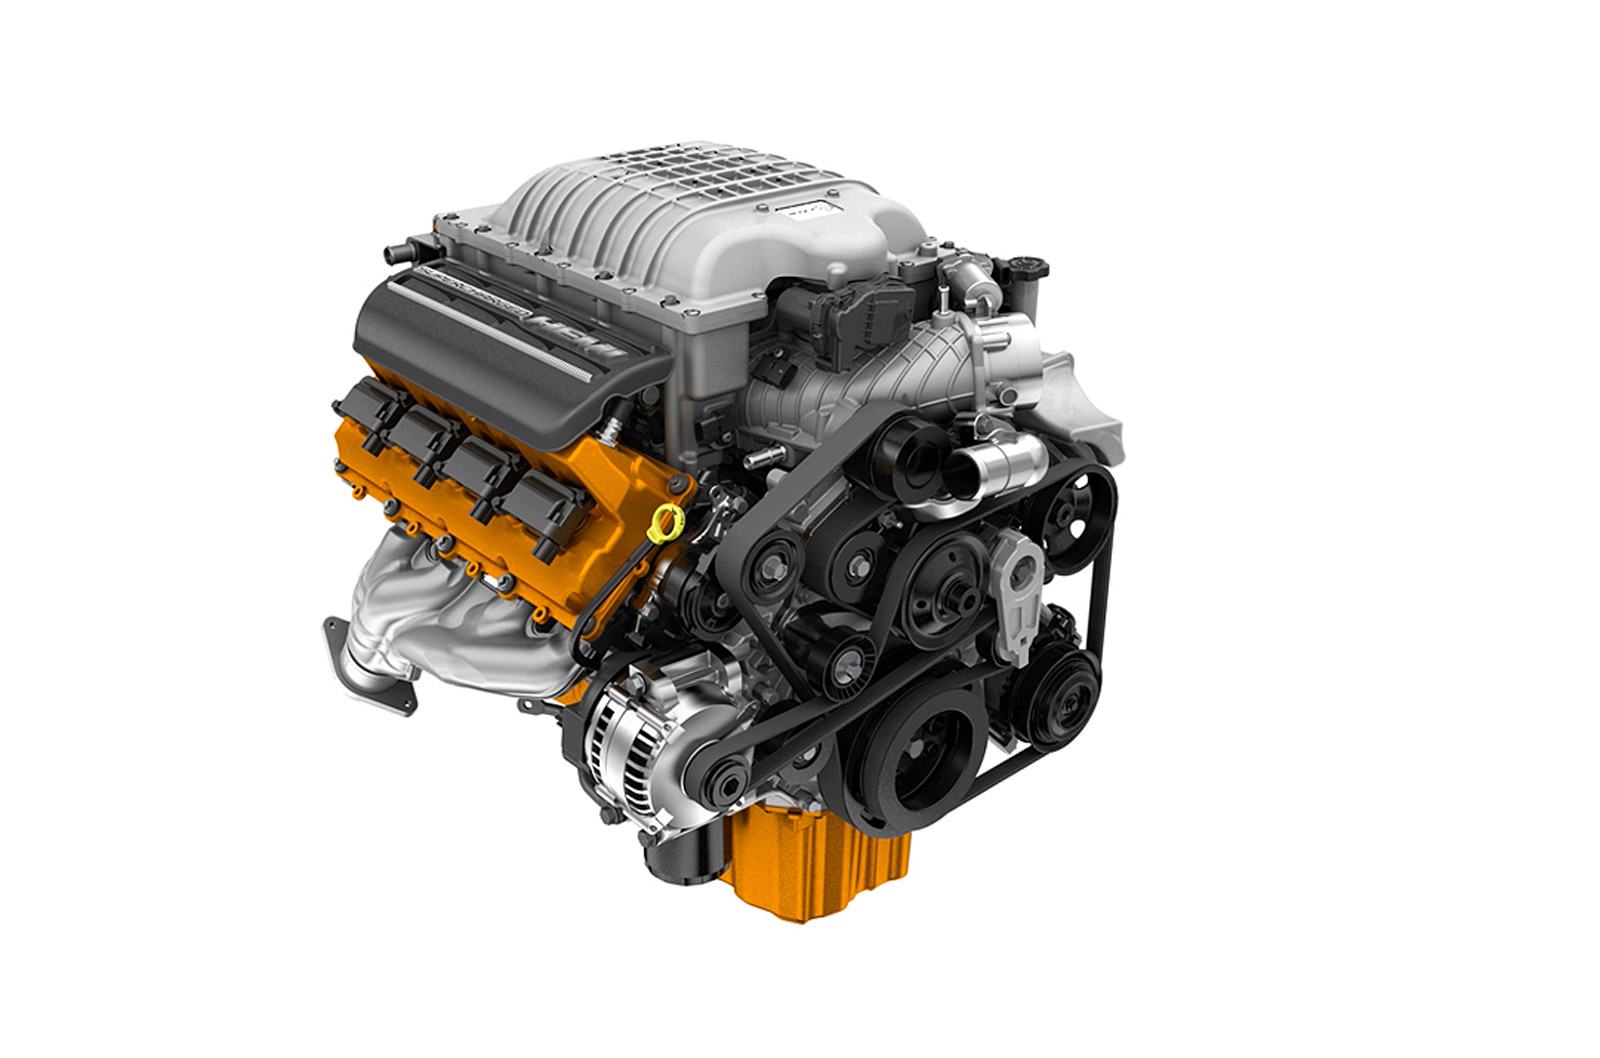 Dodge Drops More Photos And Specs For 2015 Challenger Srt Hellcat 3 Liter Engine Diagram